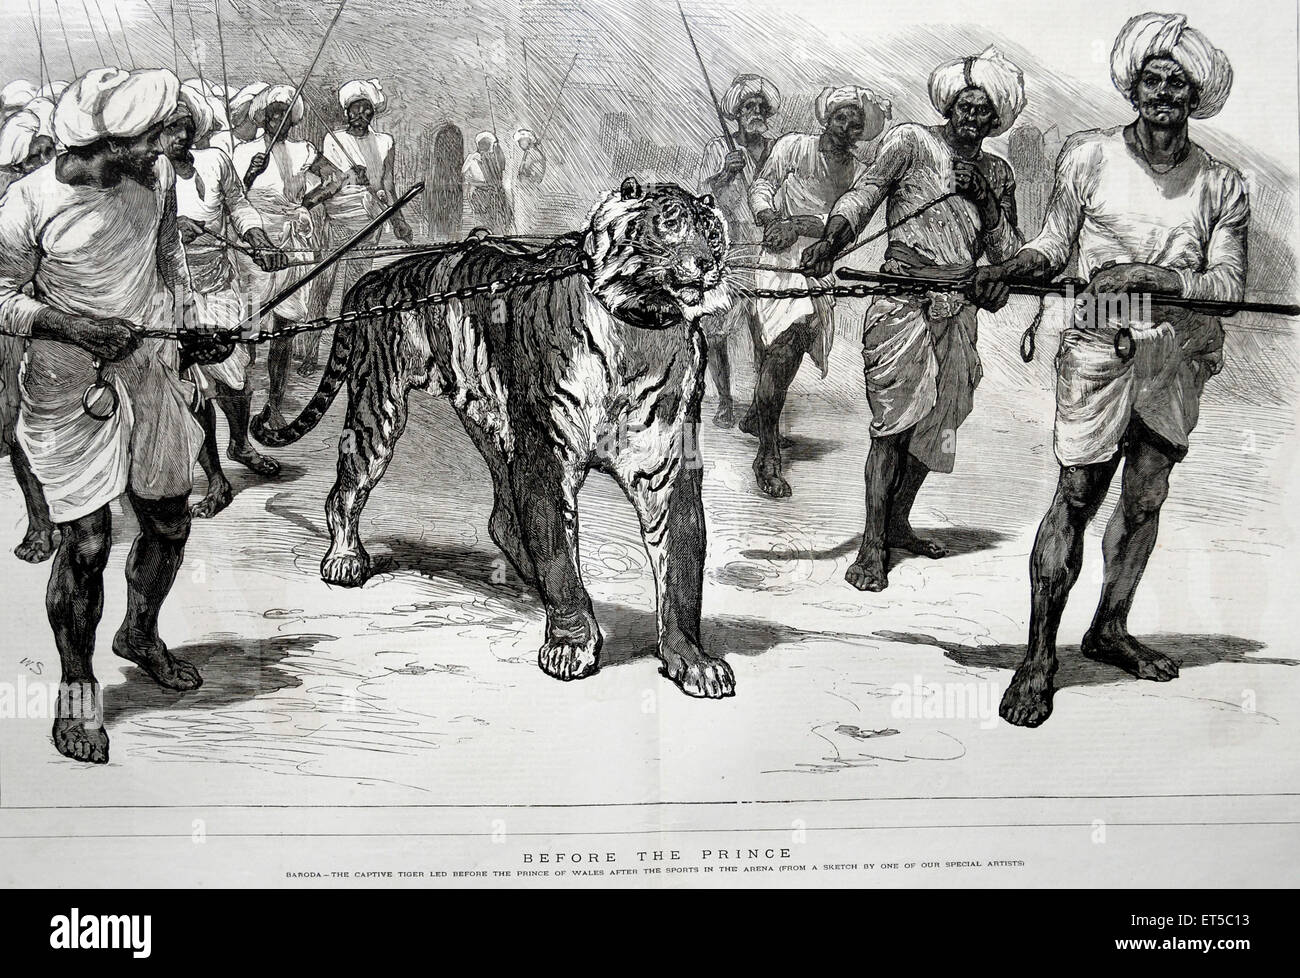 Royalty on Tour  Baroda The captive tiger led before the Prince of Wales after the sports in the Arena ; India - Stock Image